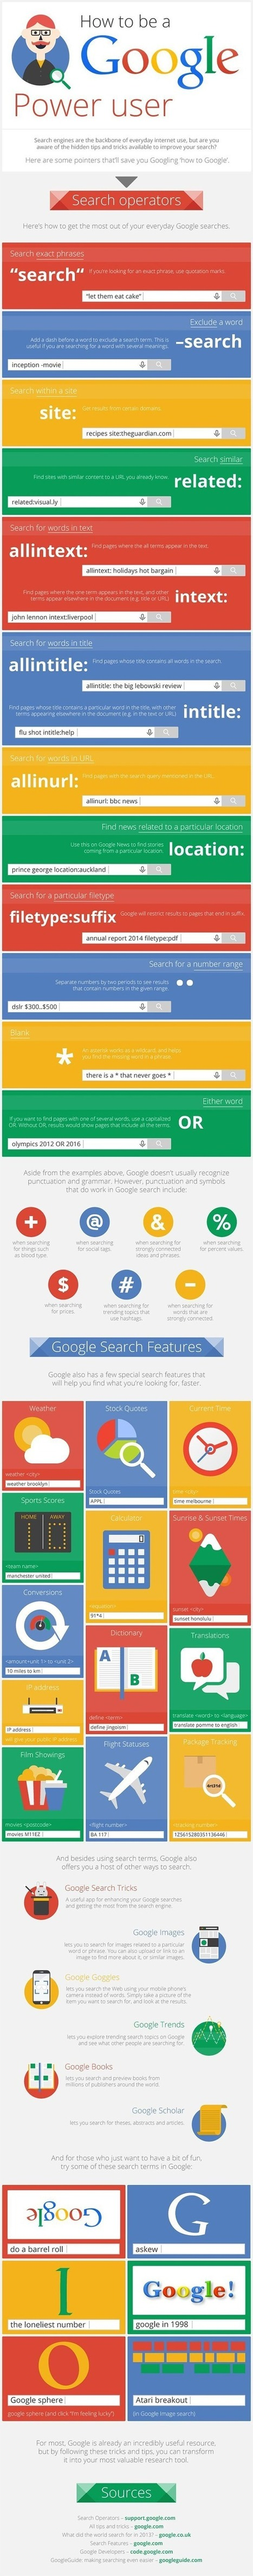 46 Hidden Tips and Tricks to Use Google Search Like a Boss: Infographic | Creating Personalized Learning Environments | Scoop.it